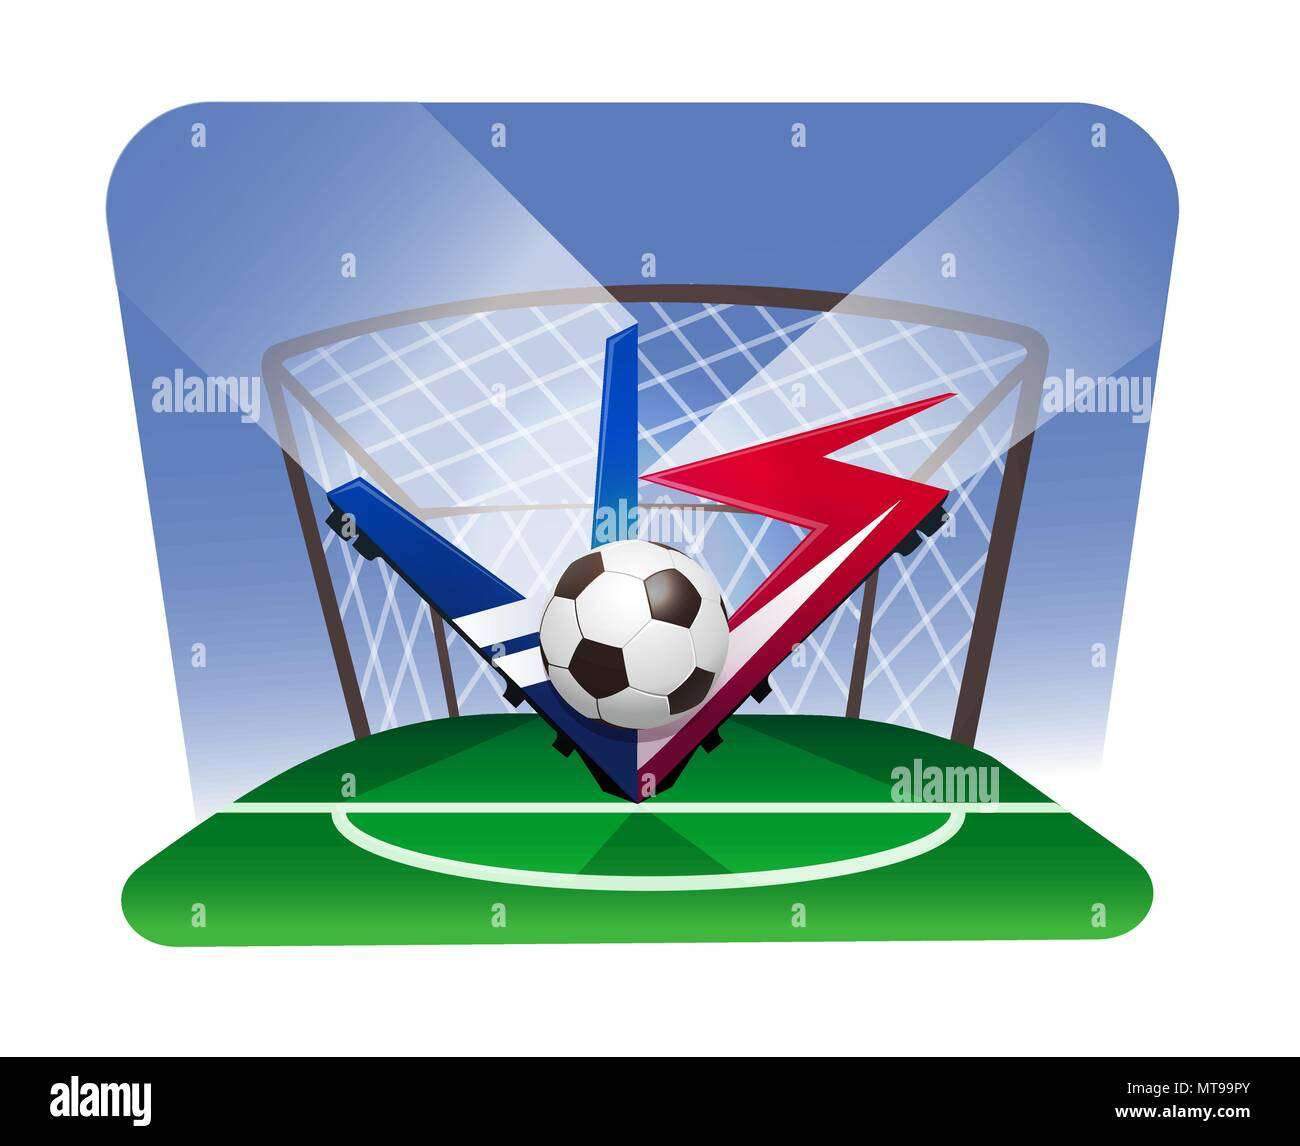 world championship football cup. Battle vs match, game concept competitive vs. - Stock Vector